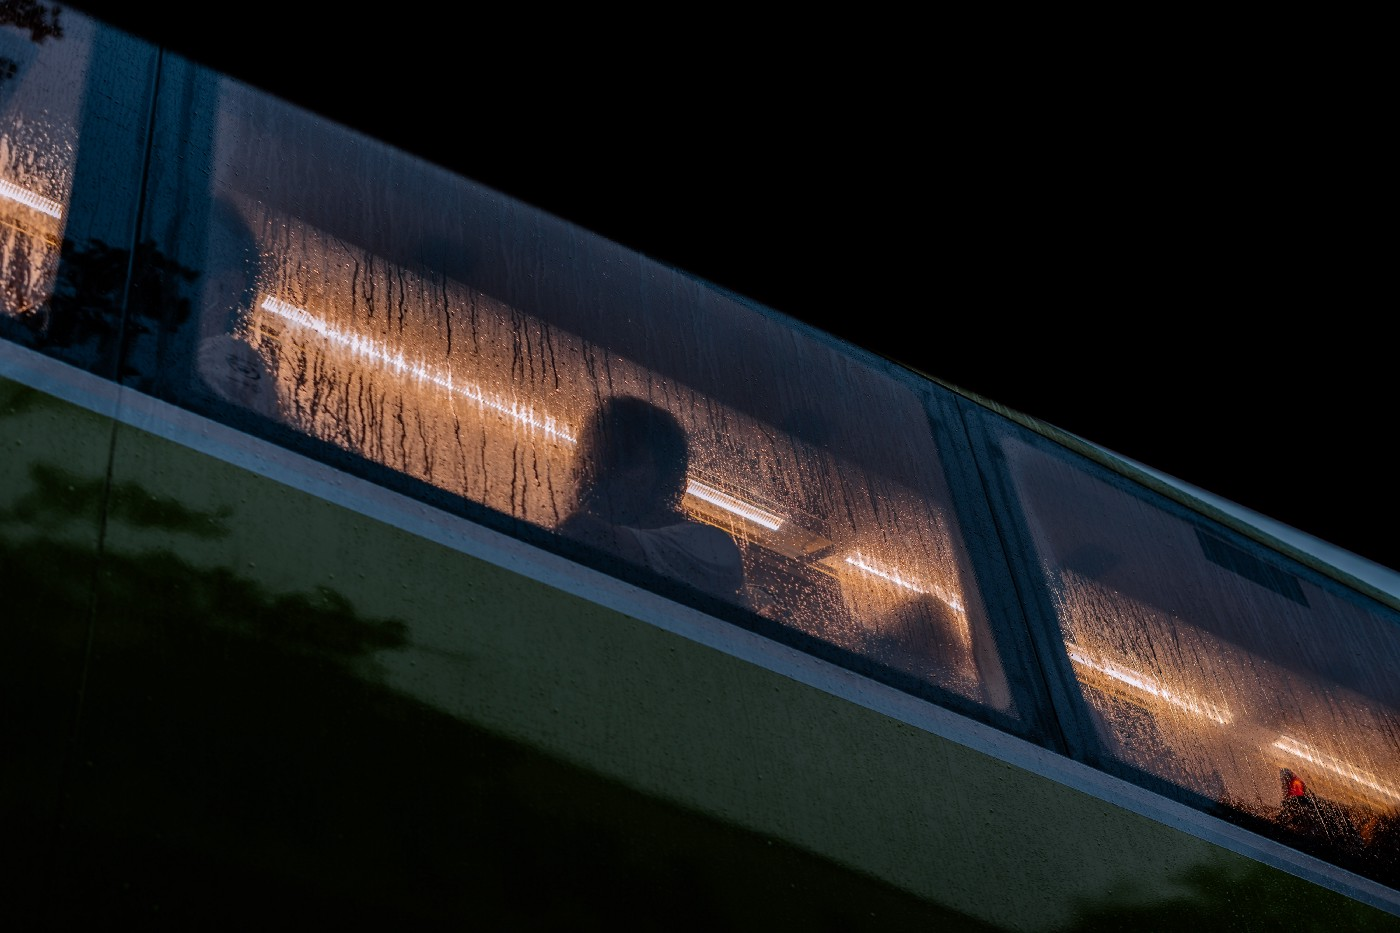 A bus window at night, with the silhouettes of its occupants illuminated by a strip of light inside the cabin.